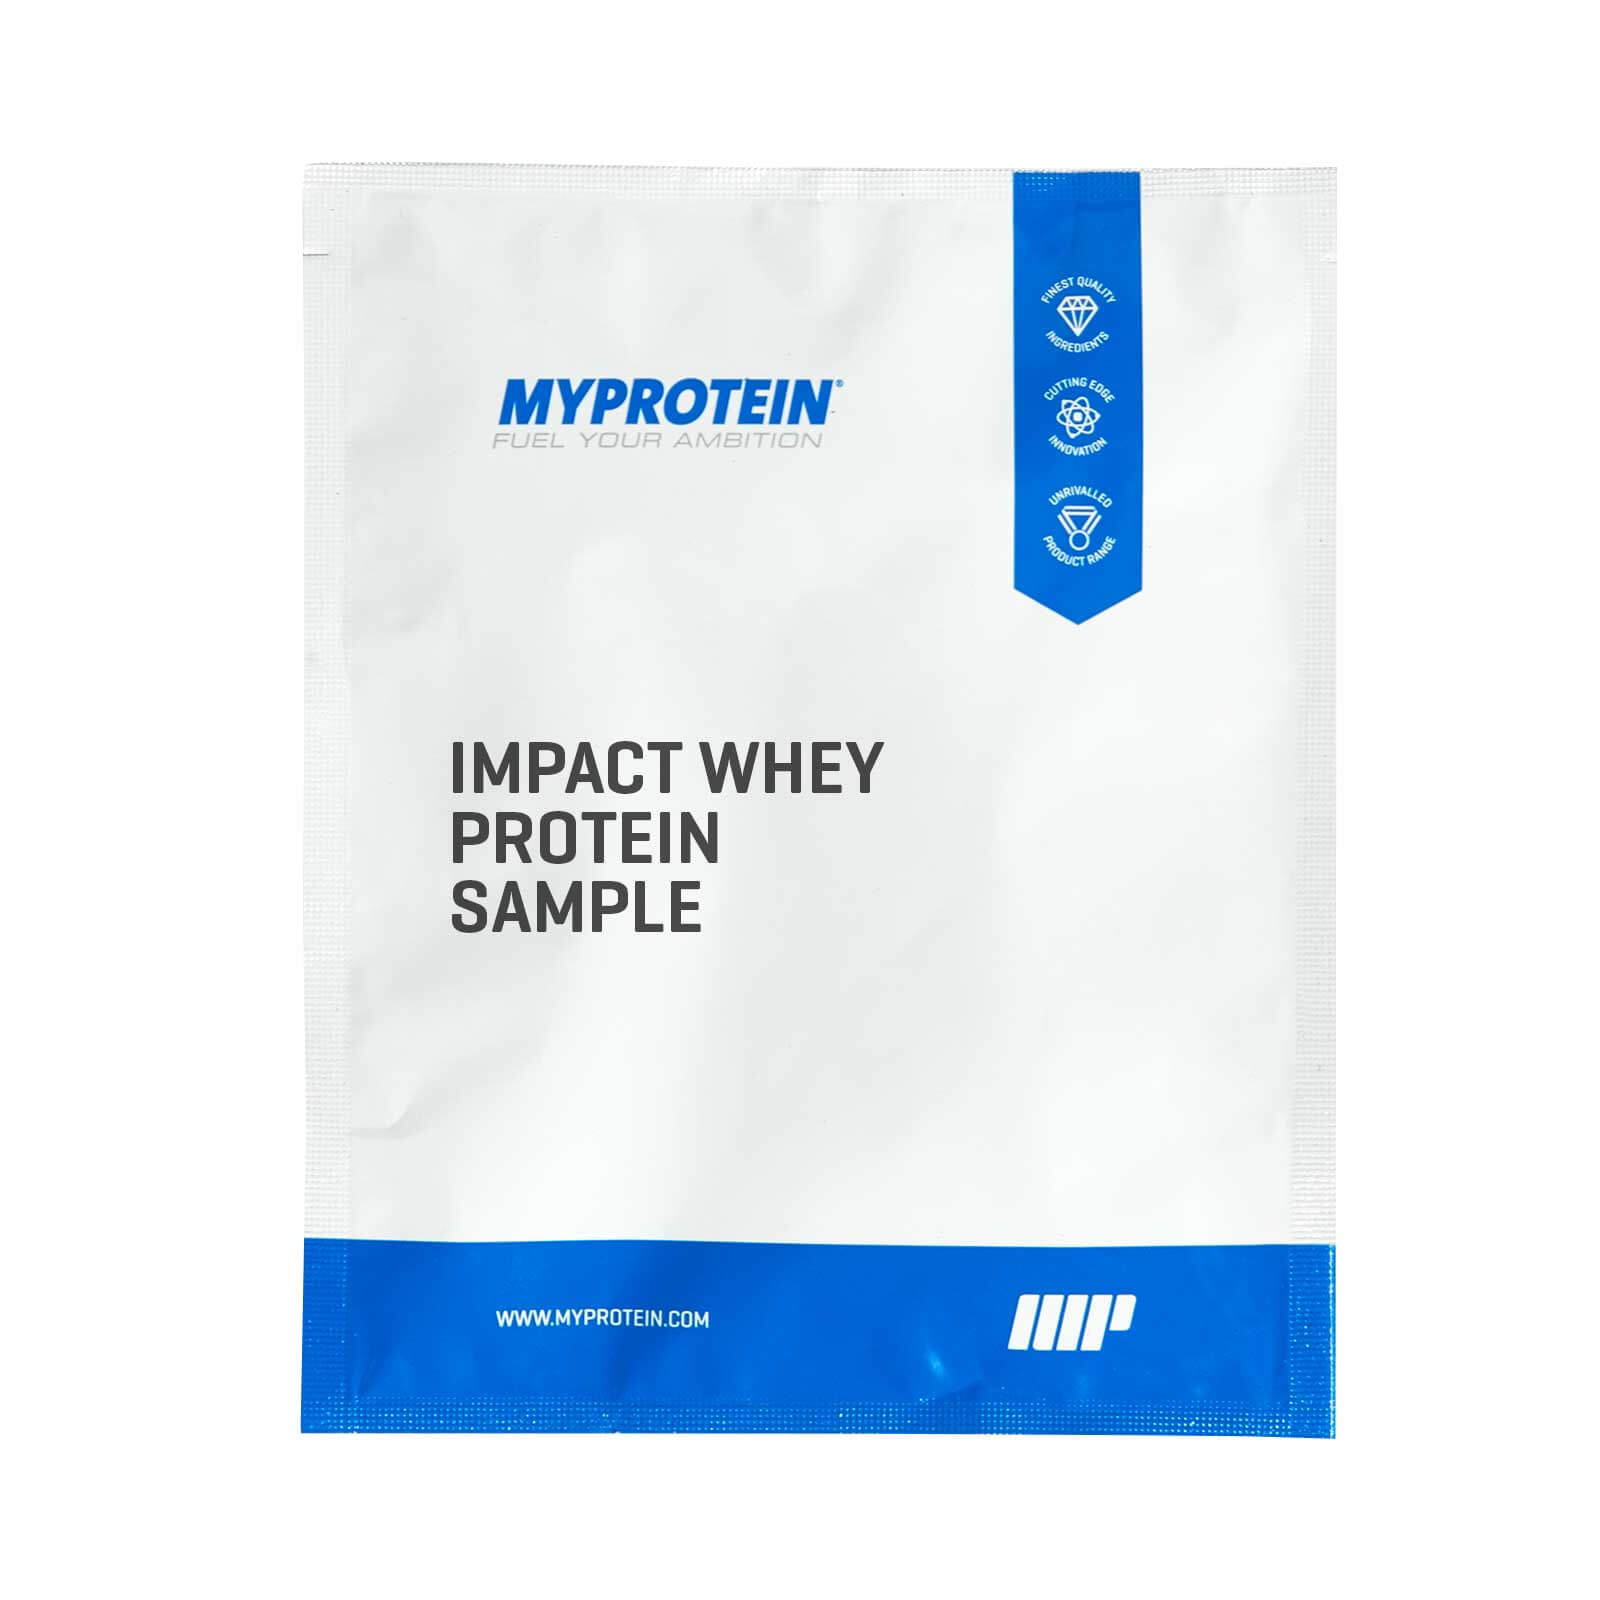 Impact Whey Protein (Sample) - Vanilla - 0.9 Oz (USA)